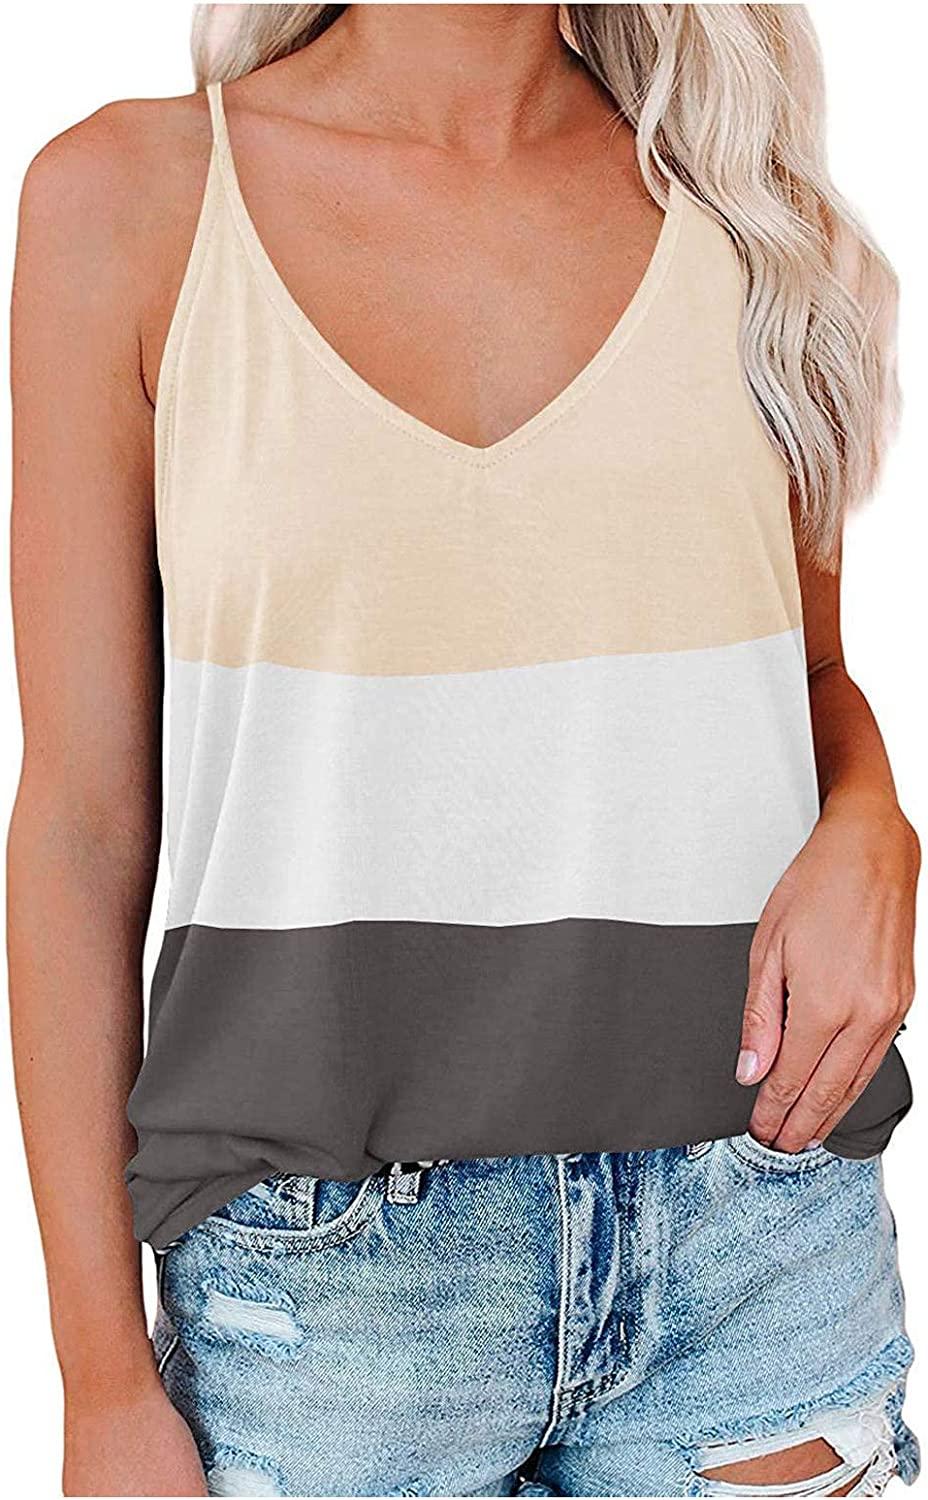 ovticza Womens Tops Women Fashion Patchwork Color Vest Tops V-Neck Sleeveless Camisole Tank Top